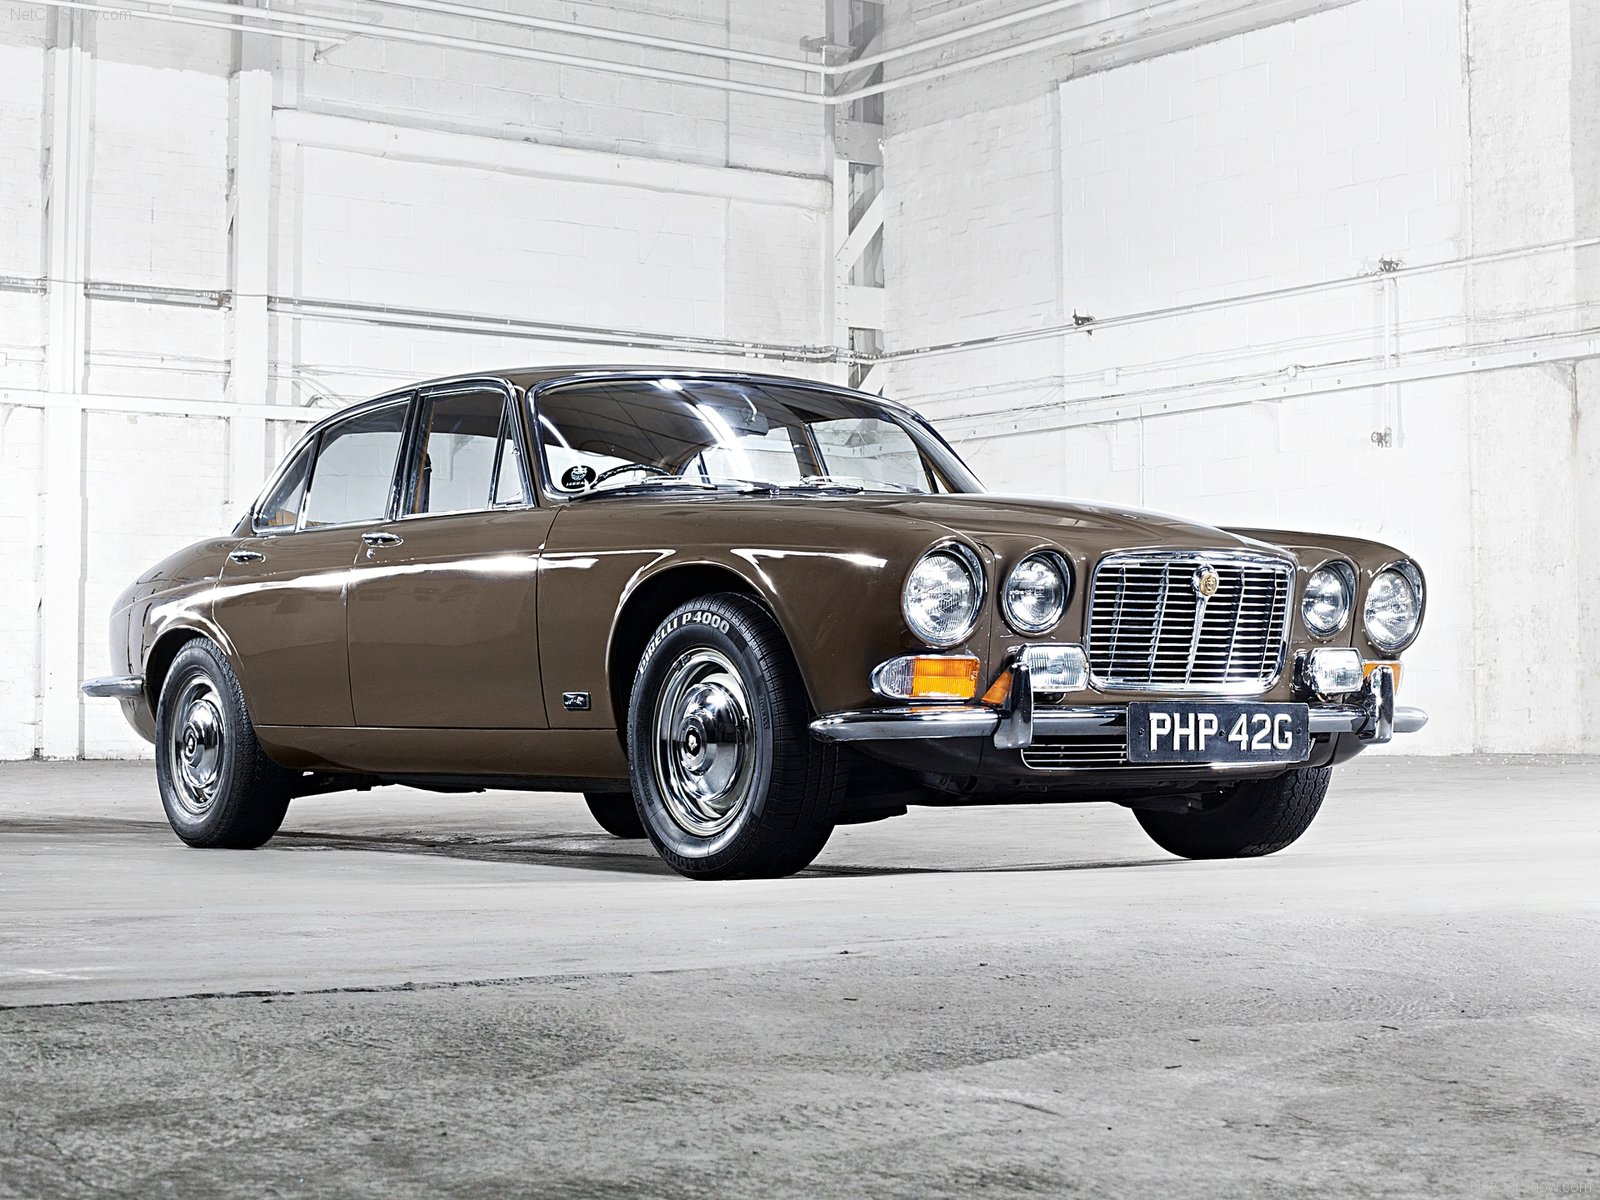 Jaguar-XJ6_1968_1600x1200_wallpaper_01.jpg